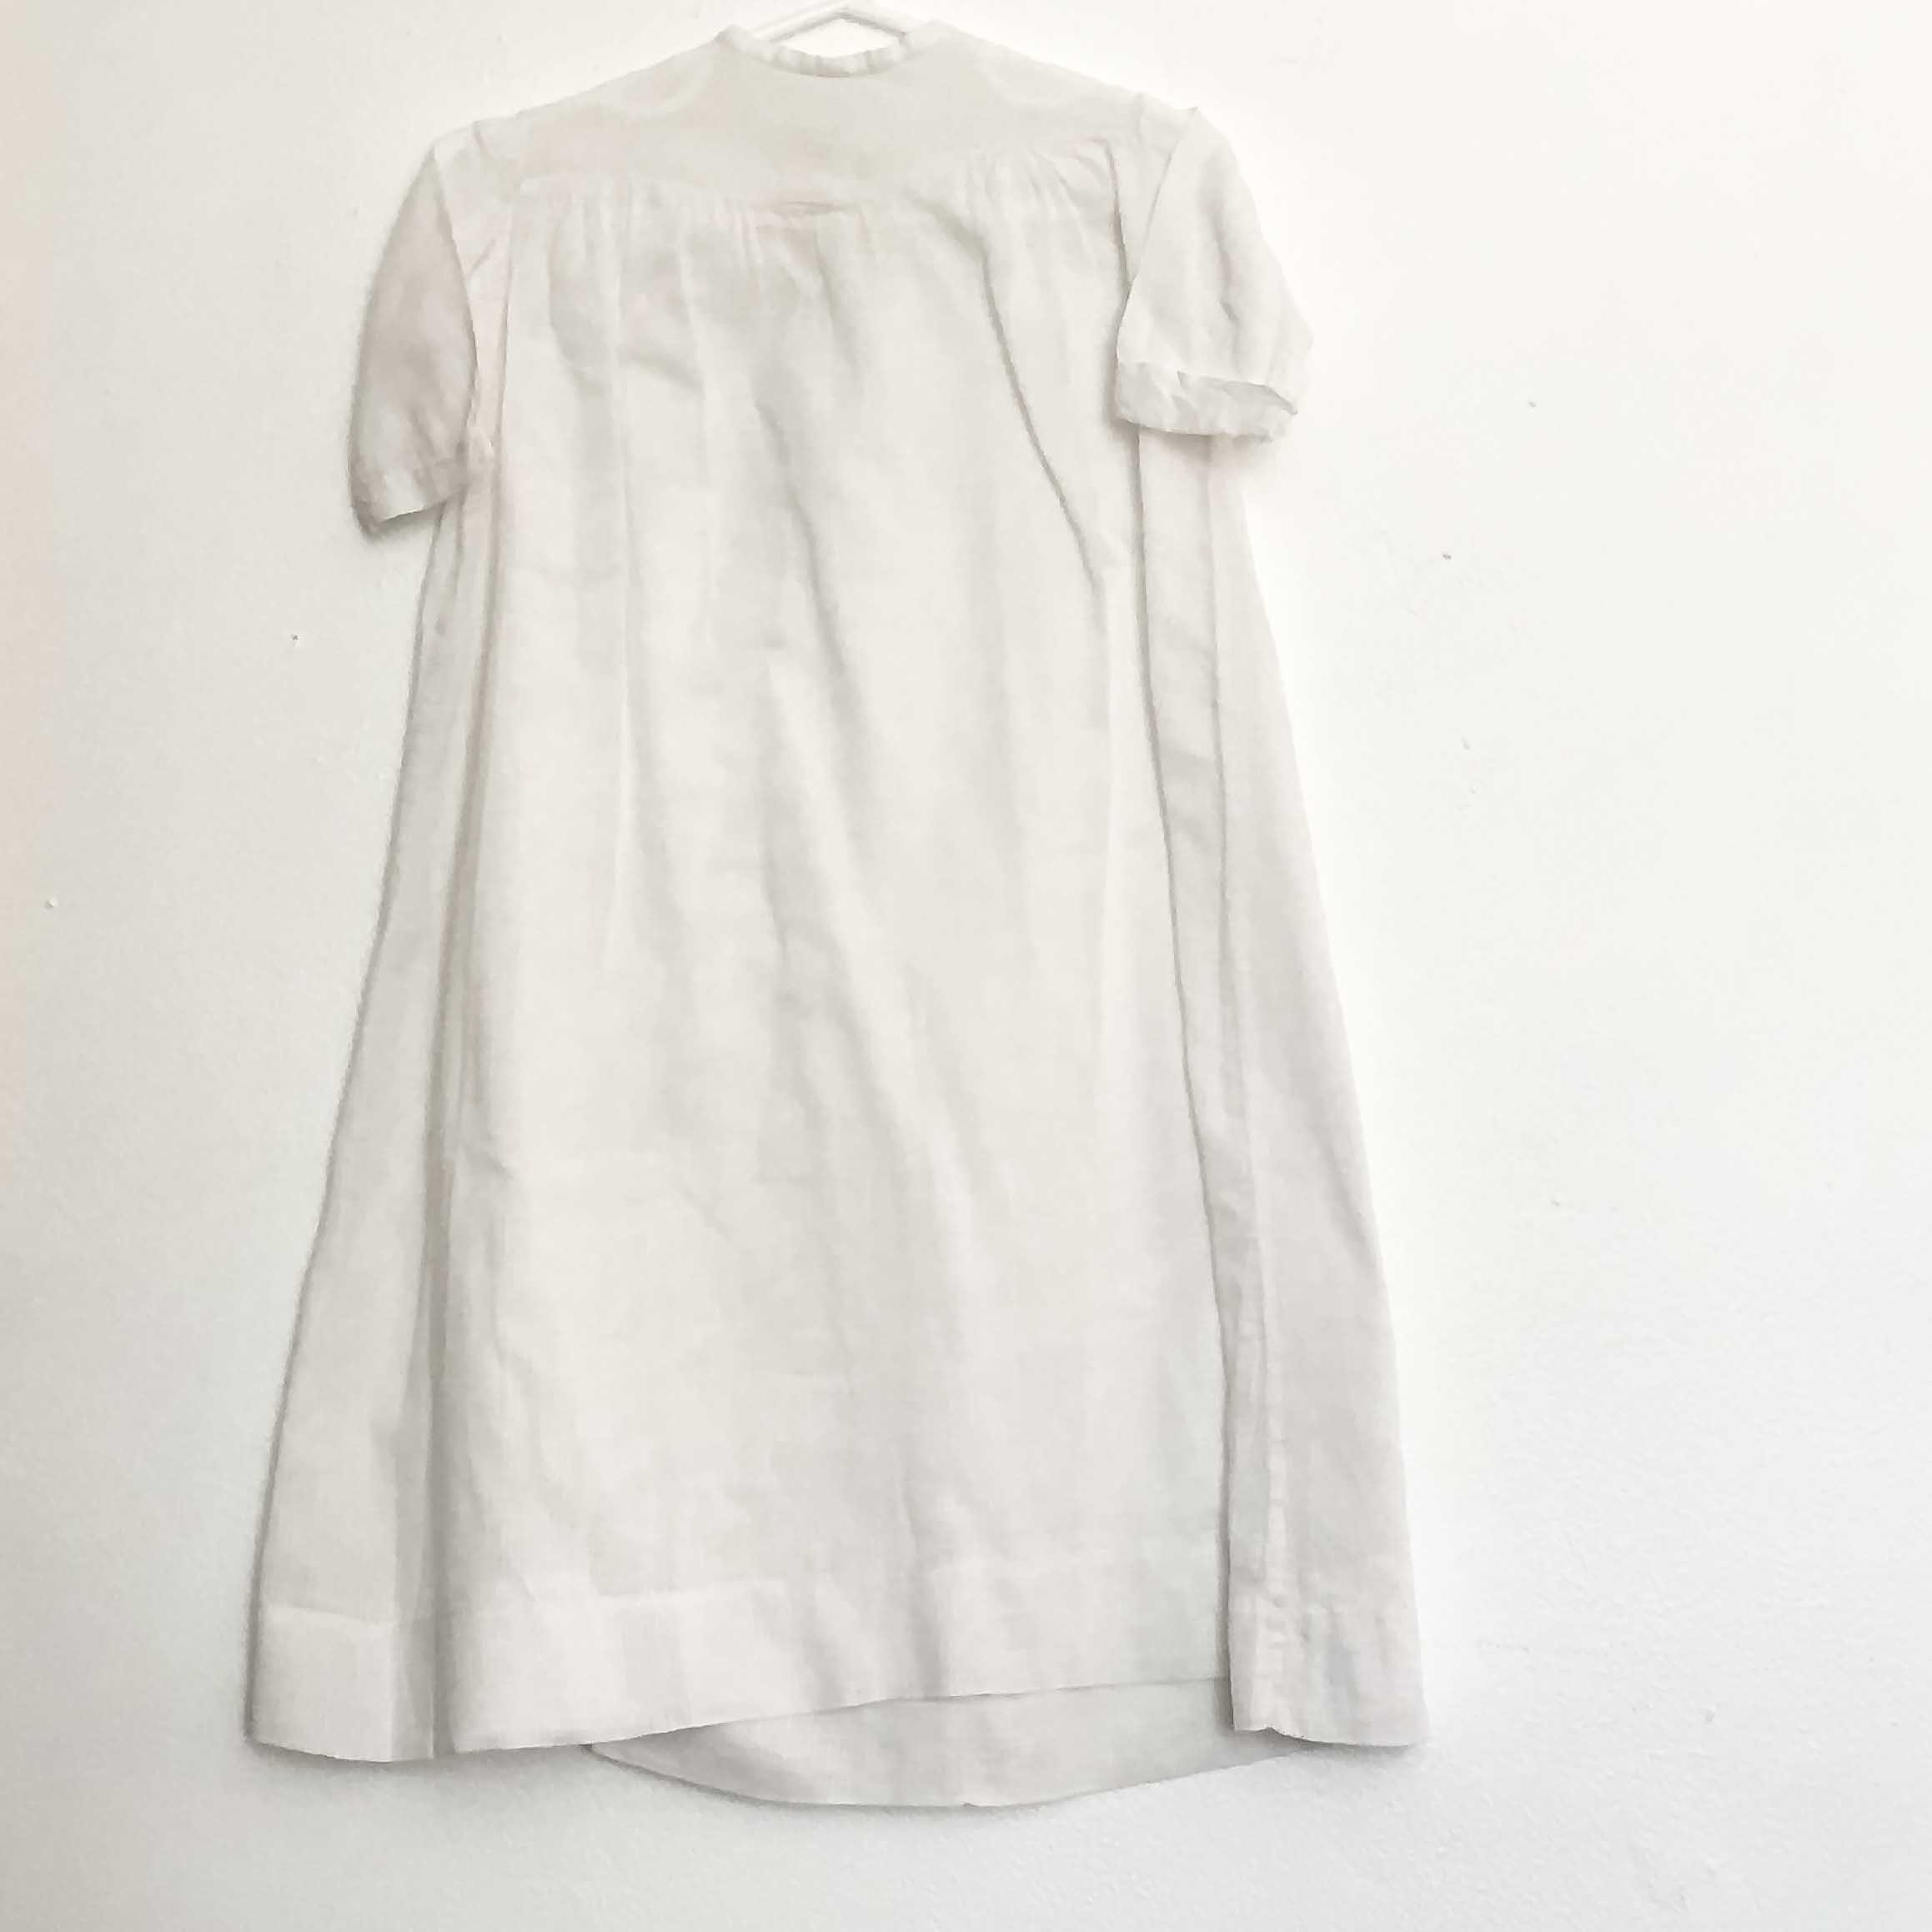 ORPCLOTHES-5.jpg